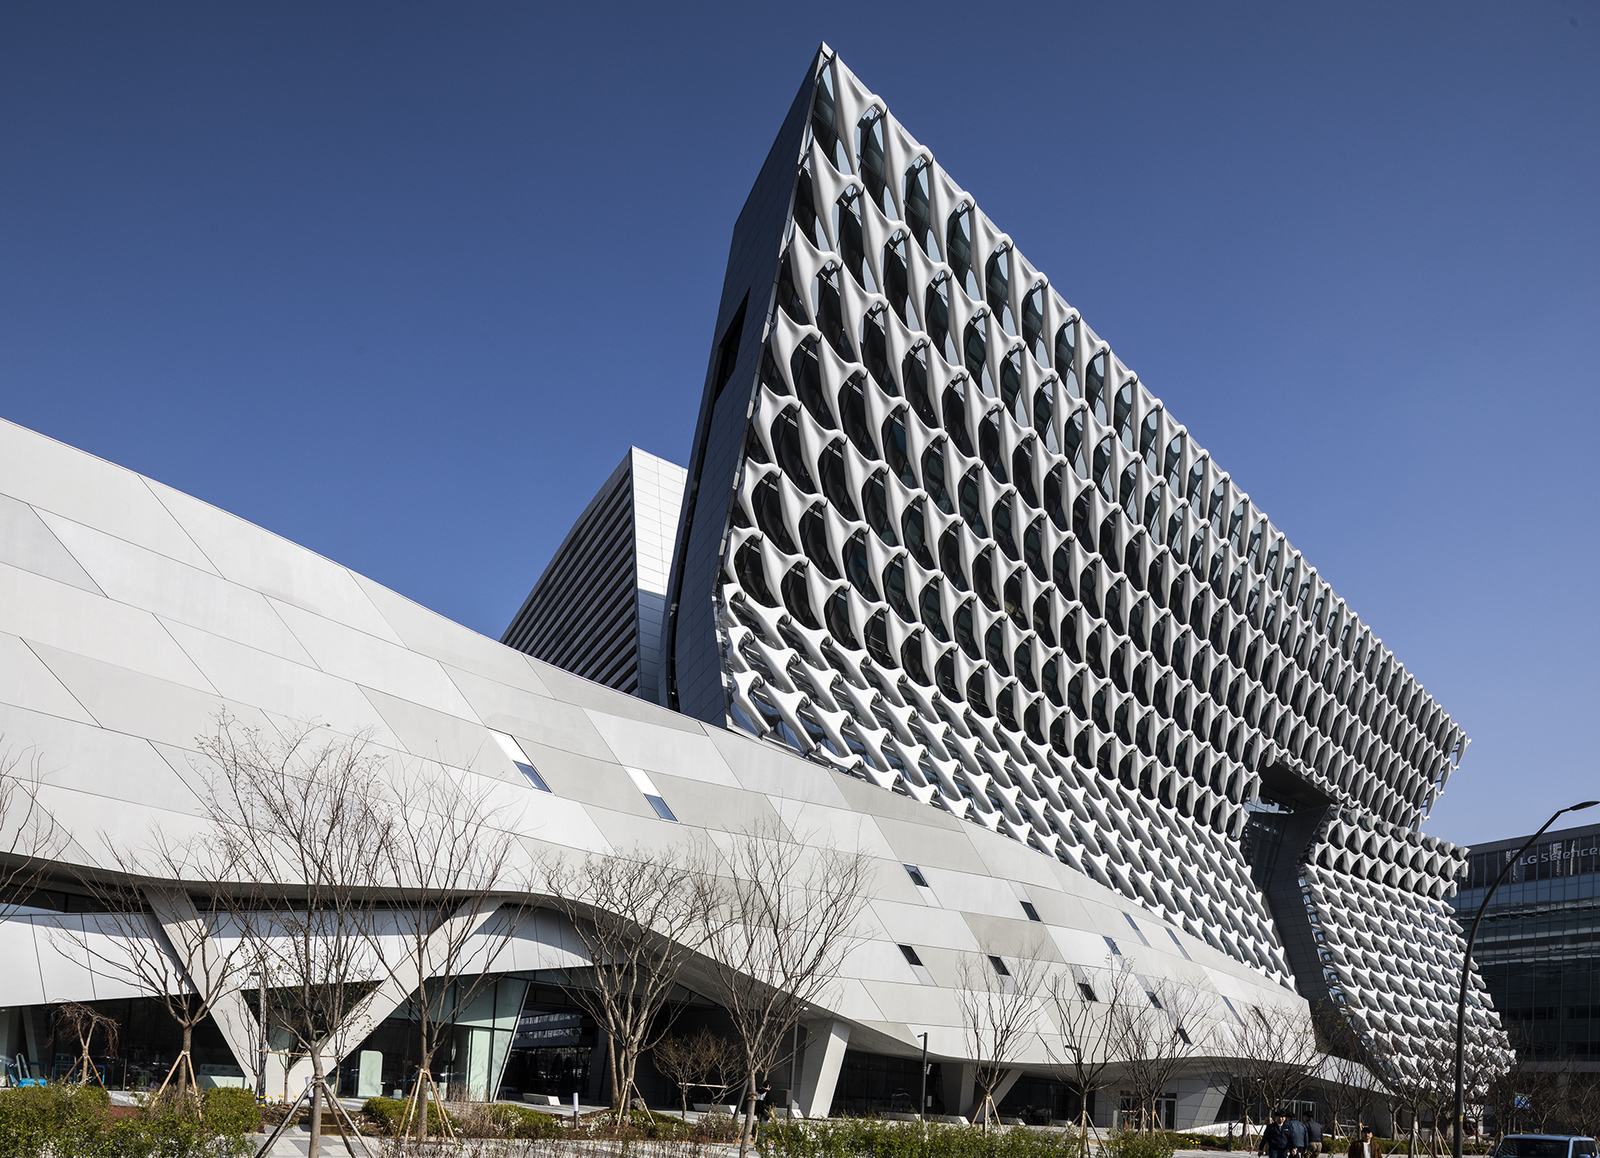 A tall building with a sweepiing facade made of interlocking white Ts, designed by Morphosis. The building continues at a lower height as a undulating gray roof with some irregular fenestration.